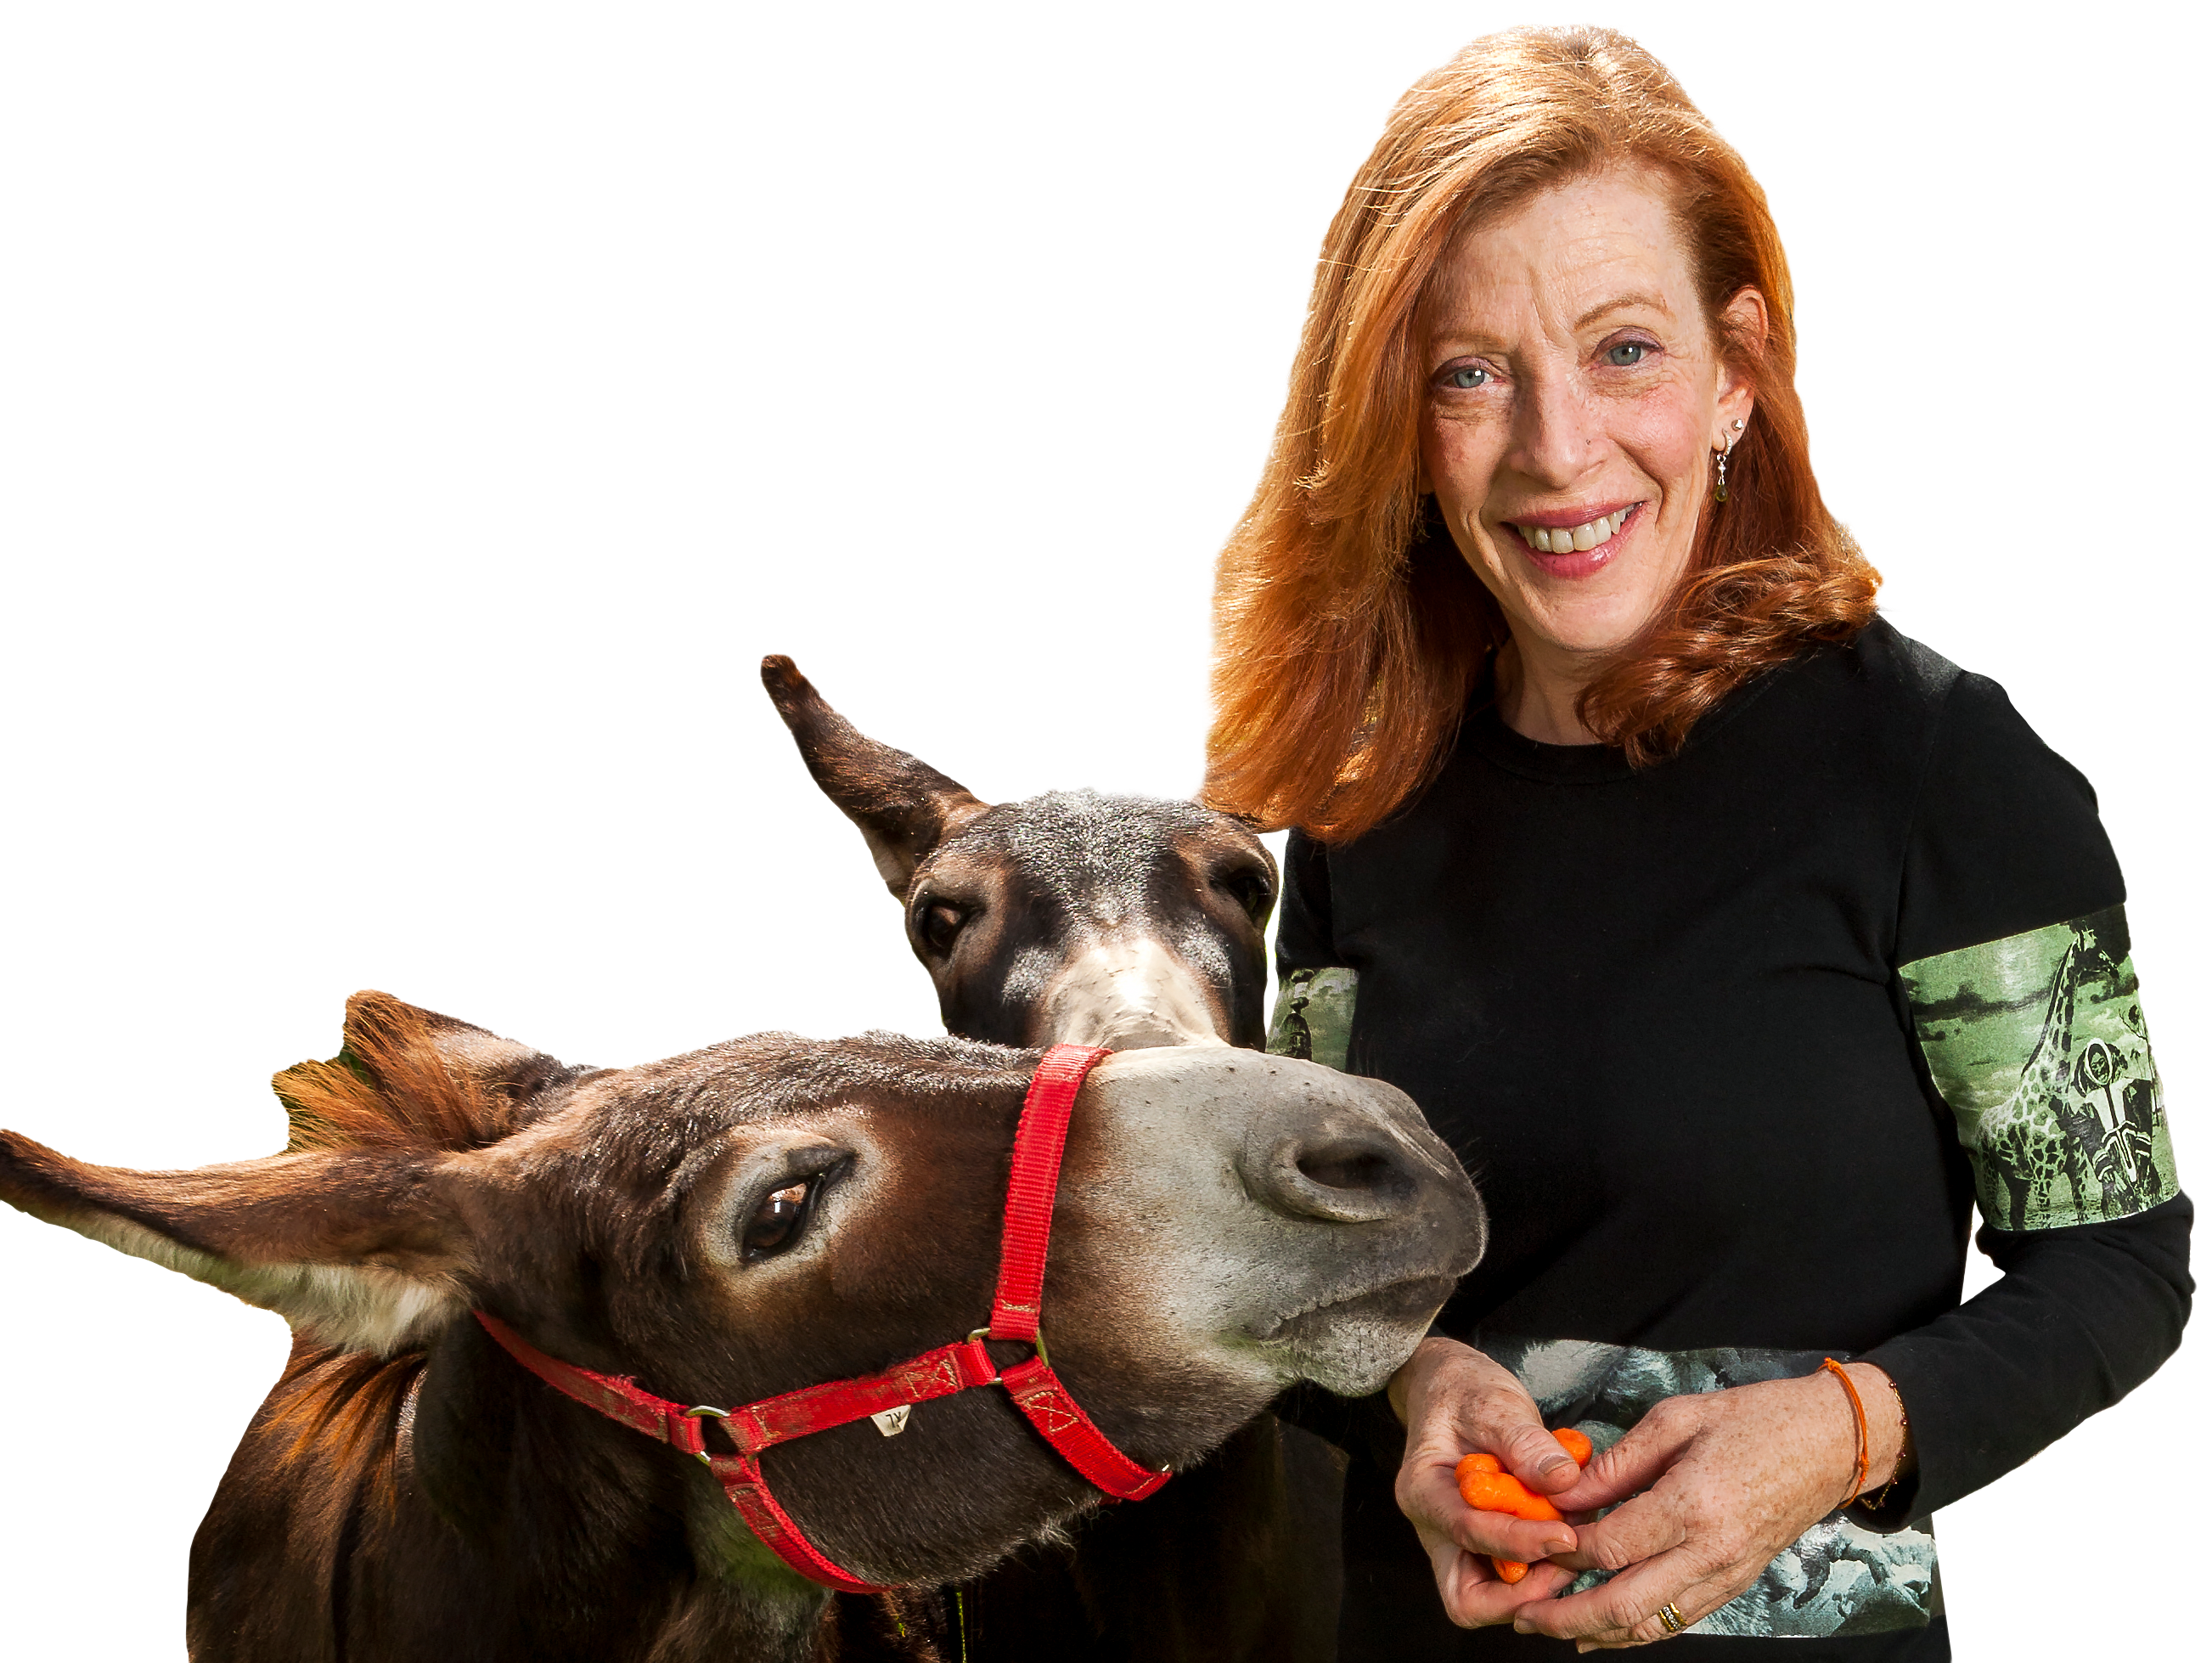 Susan Orlean's delightful essay collection 'On Animals' celebrates the finned and the furred.